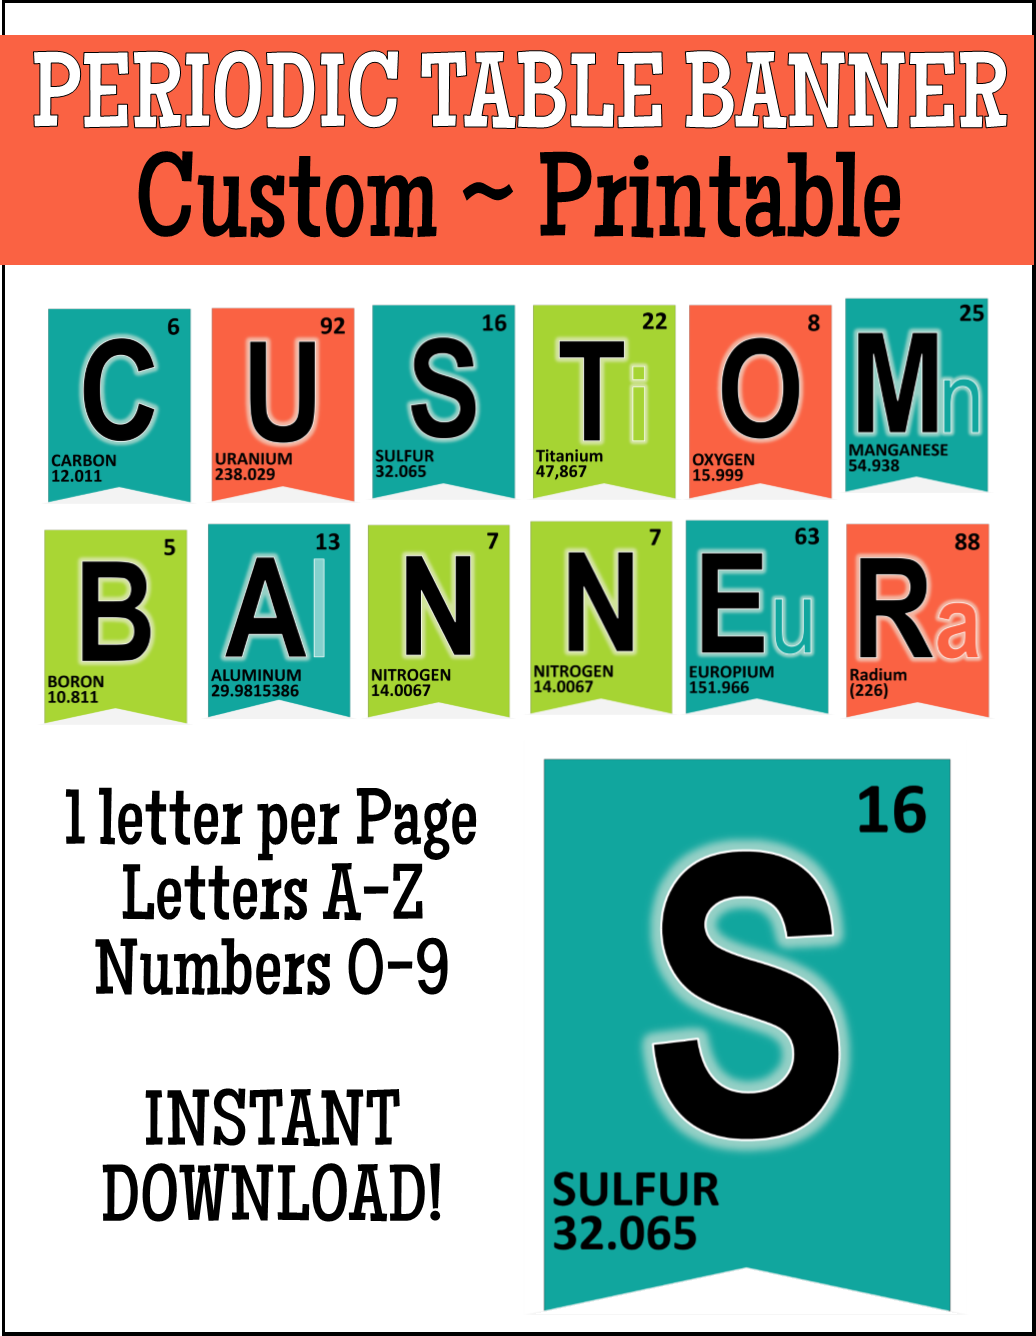 Periodic Table Banner - Custom